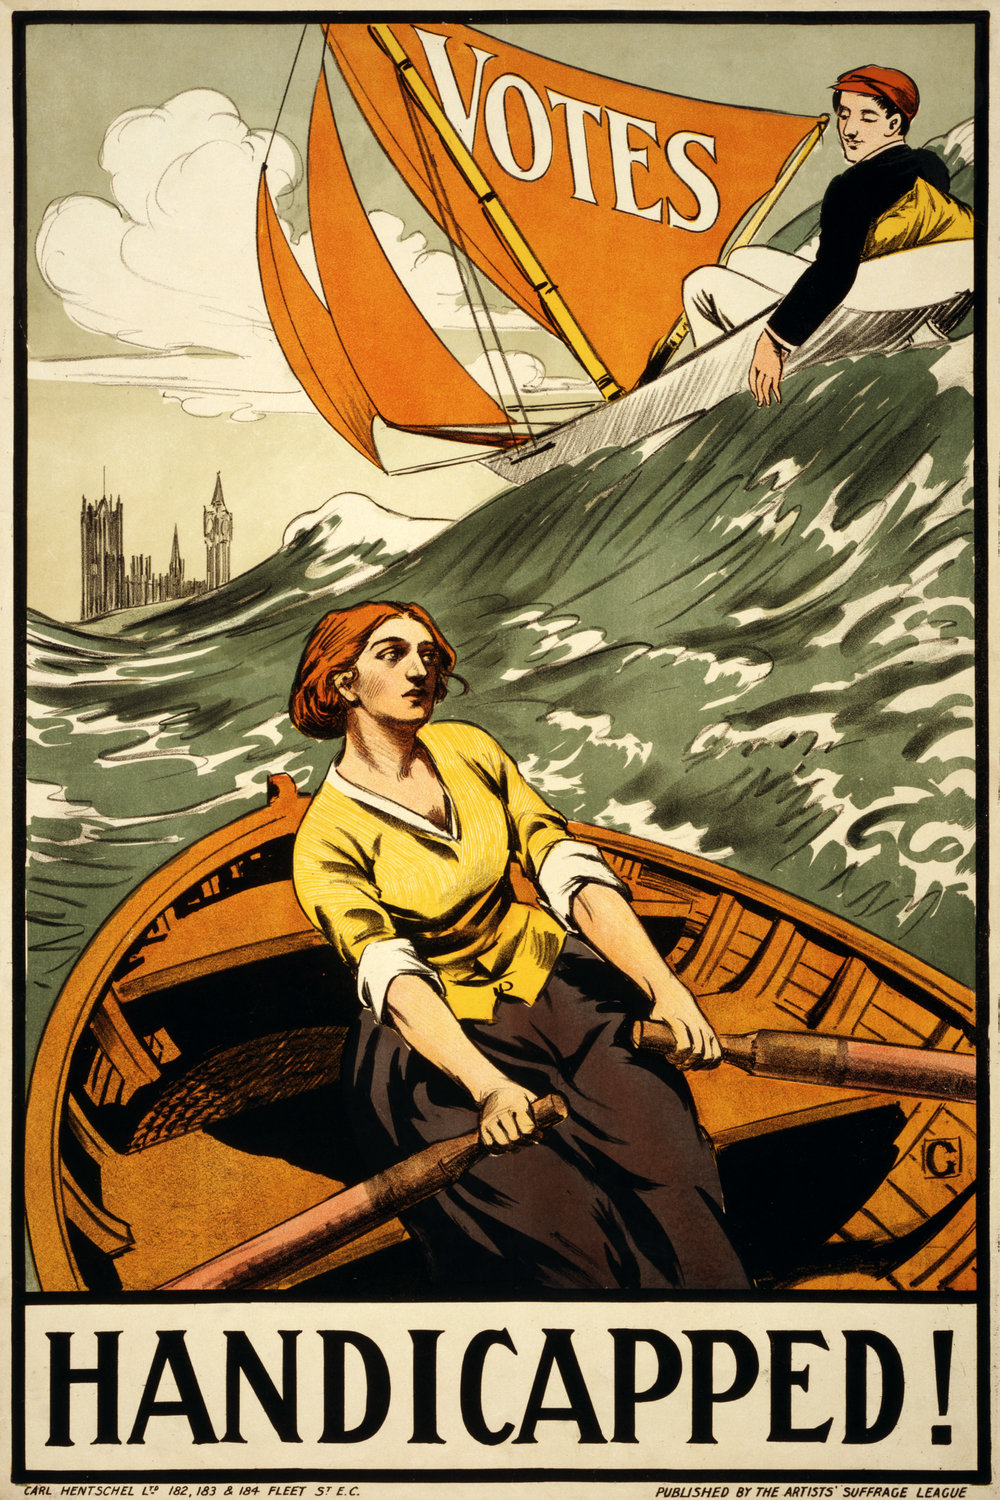 Handicapped!_Women's_suffrage_poster,_1910s.jpg